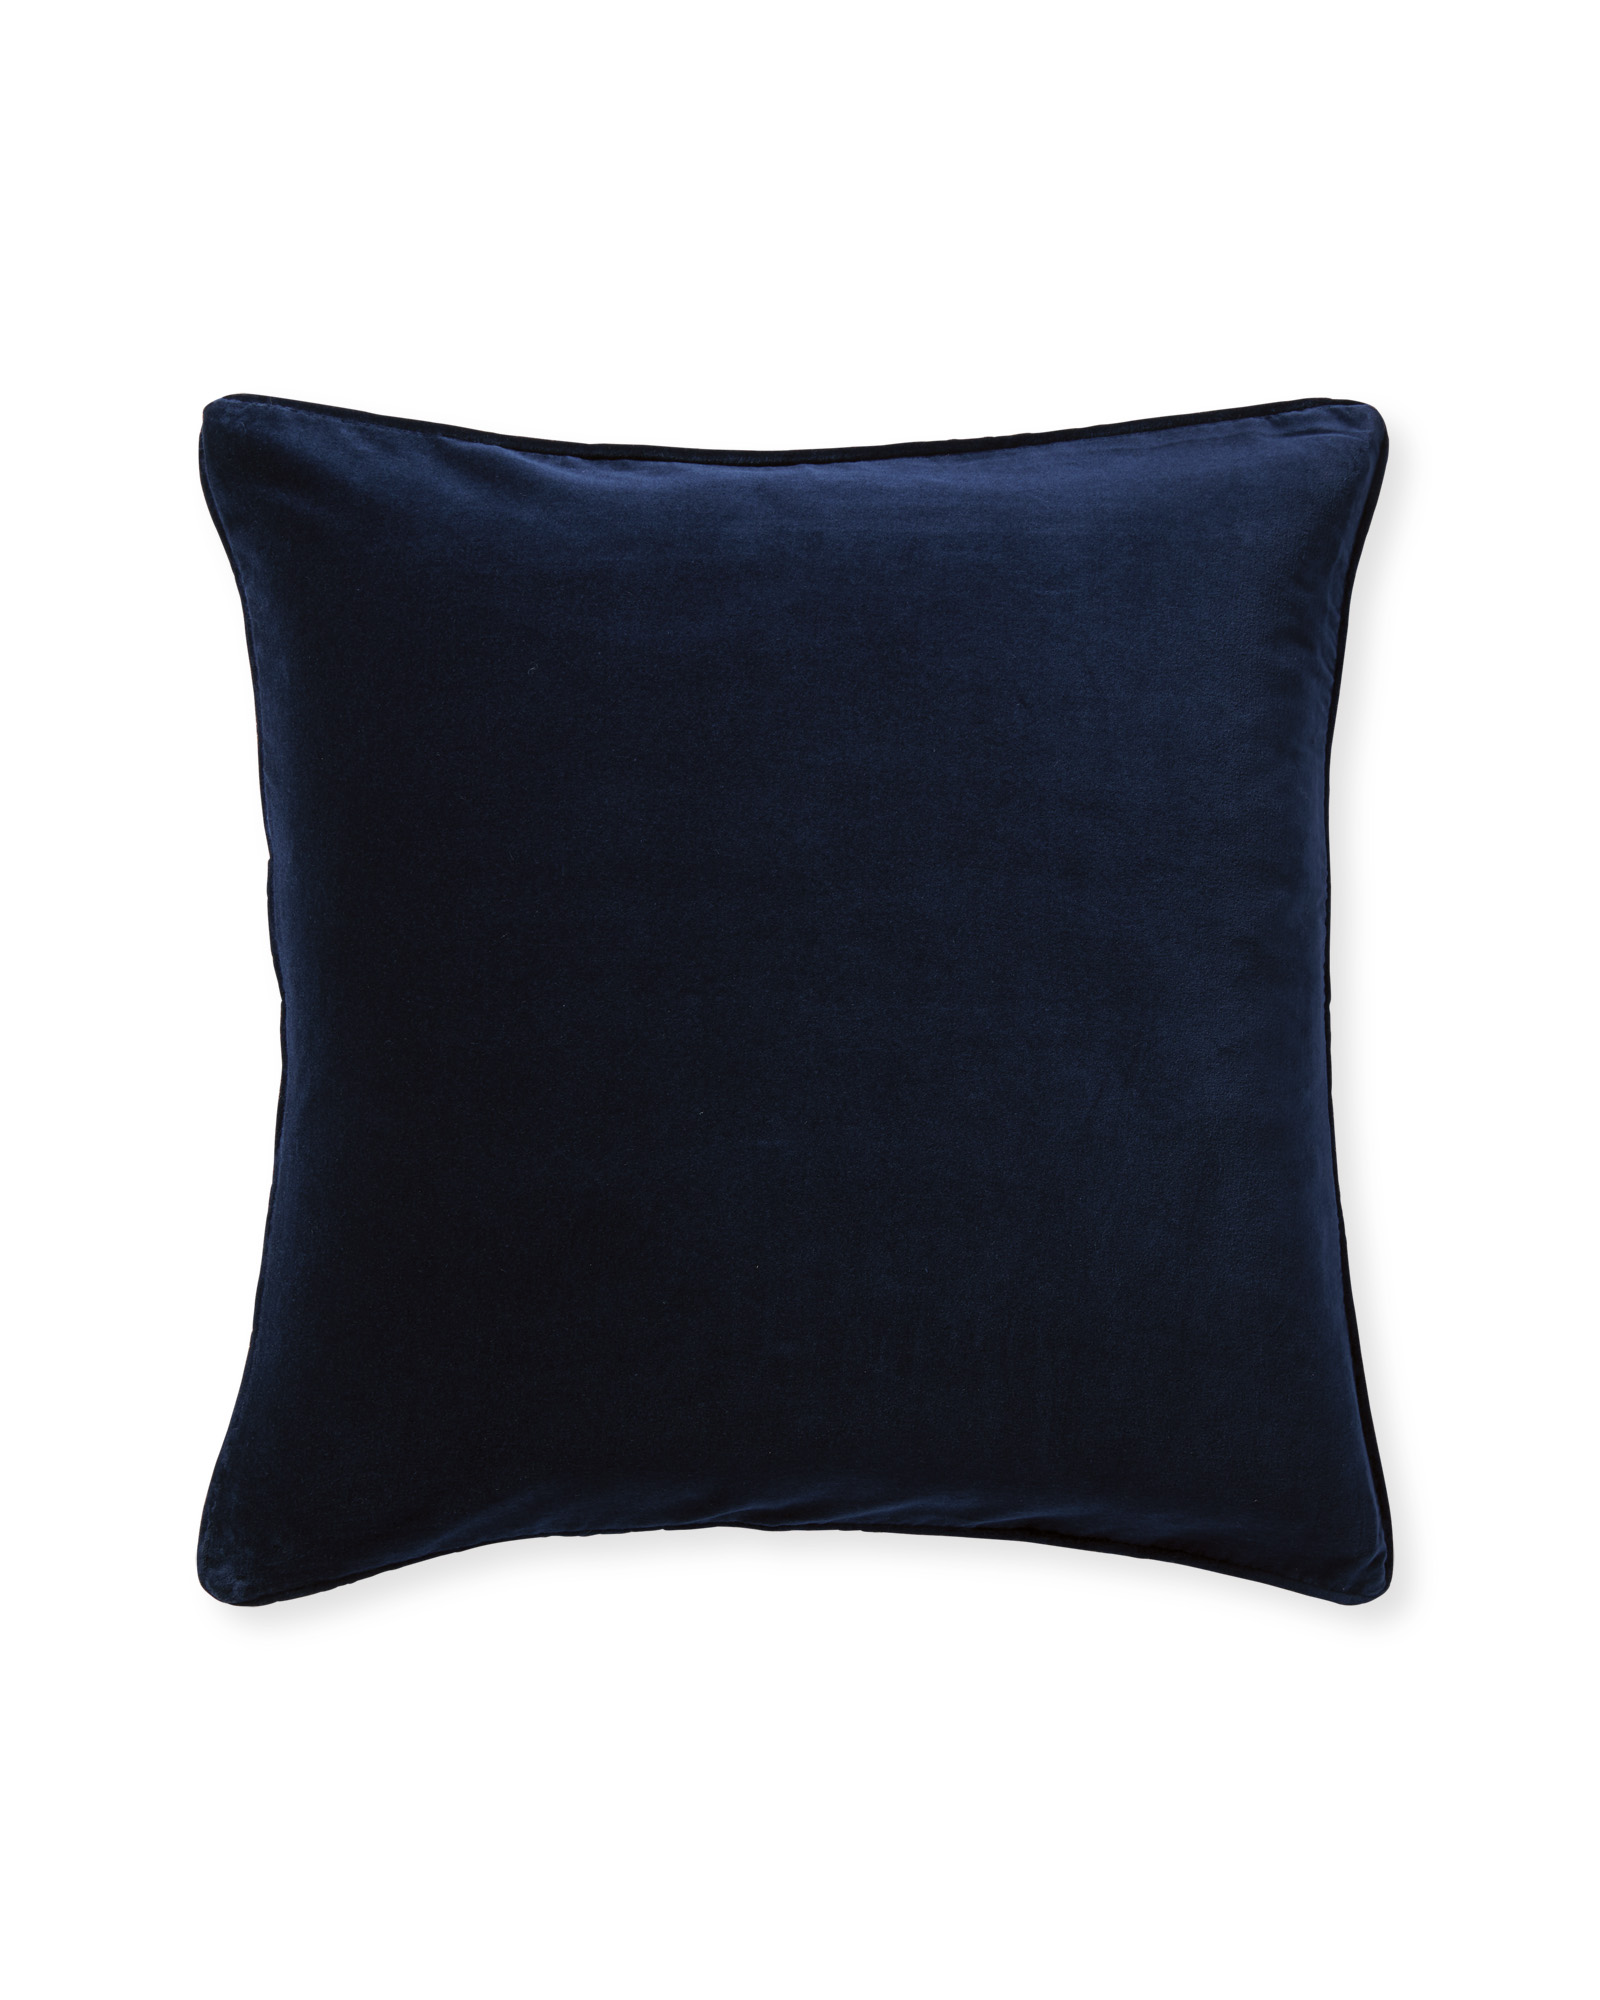 Kingsbury Pillow Cover,